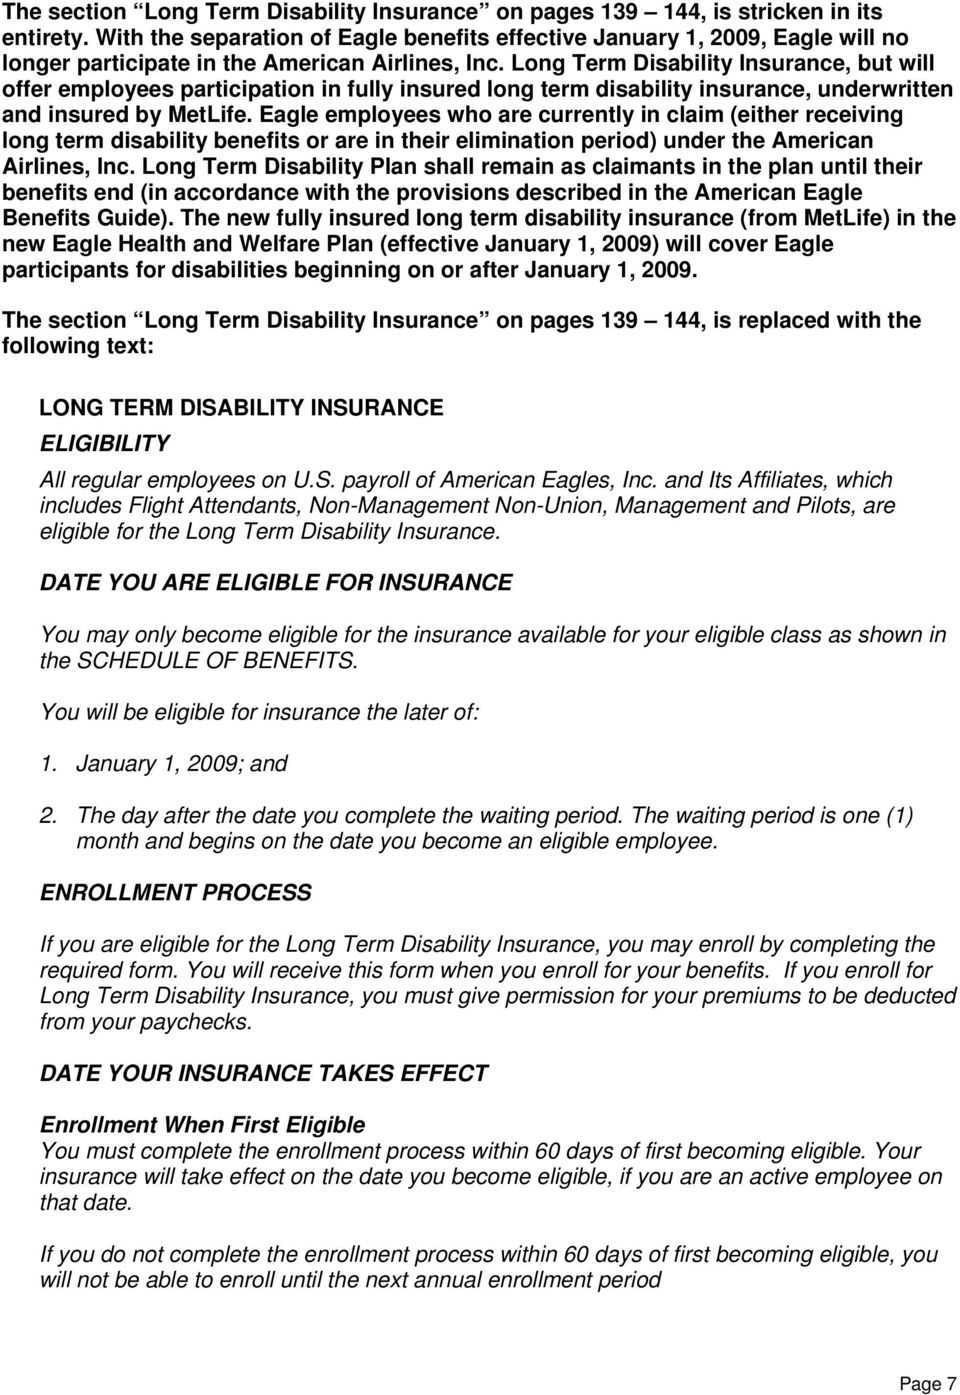 American Eagle Airlines. Employee Benefits Guide - PDF